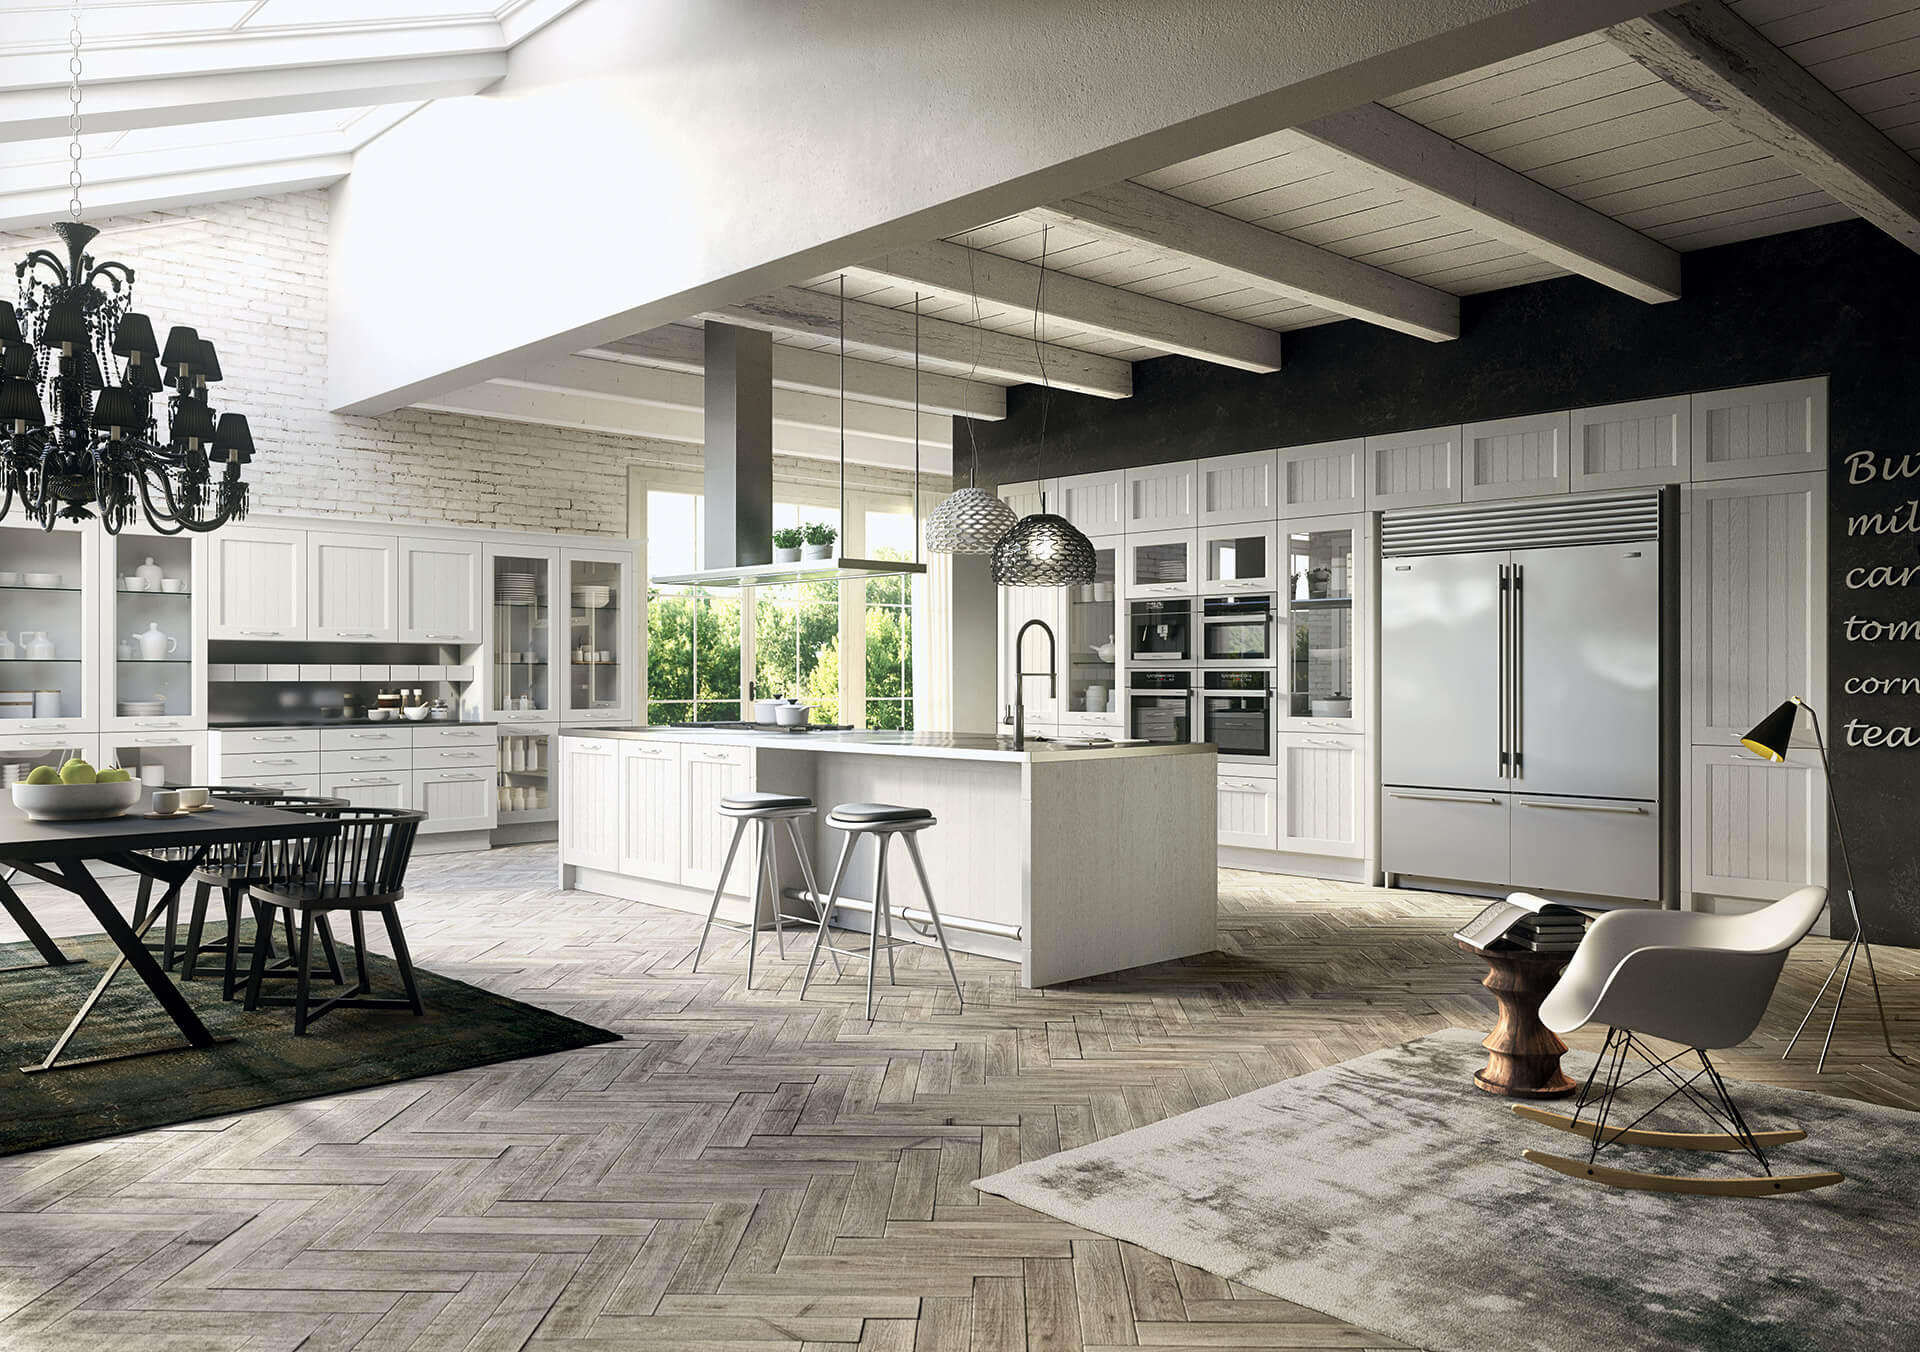 Country kitchens made in Italy Arrital Village